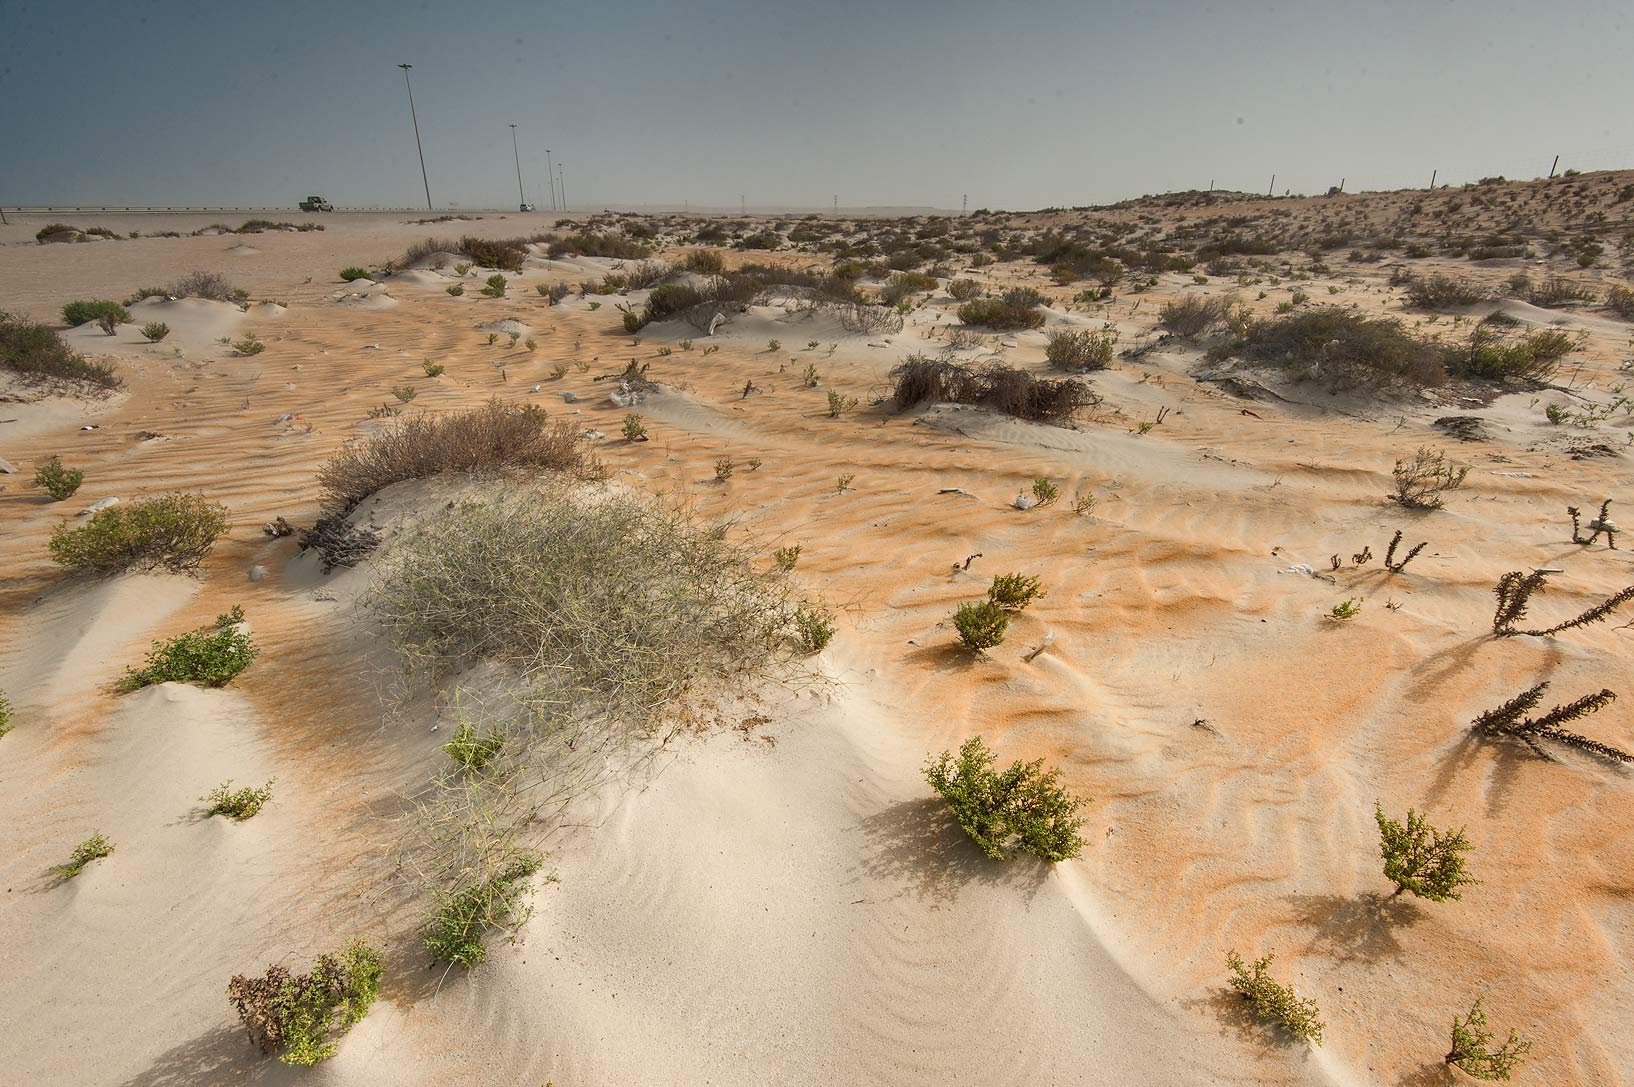 Sandy depression on roadside of Salwa Rd. in area of Rawdat Ekdaim. Southern Qatar